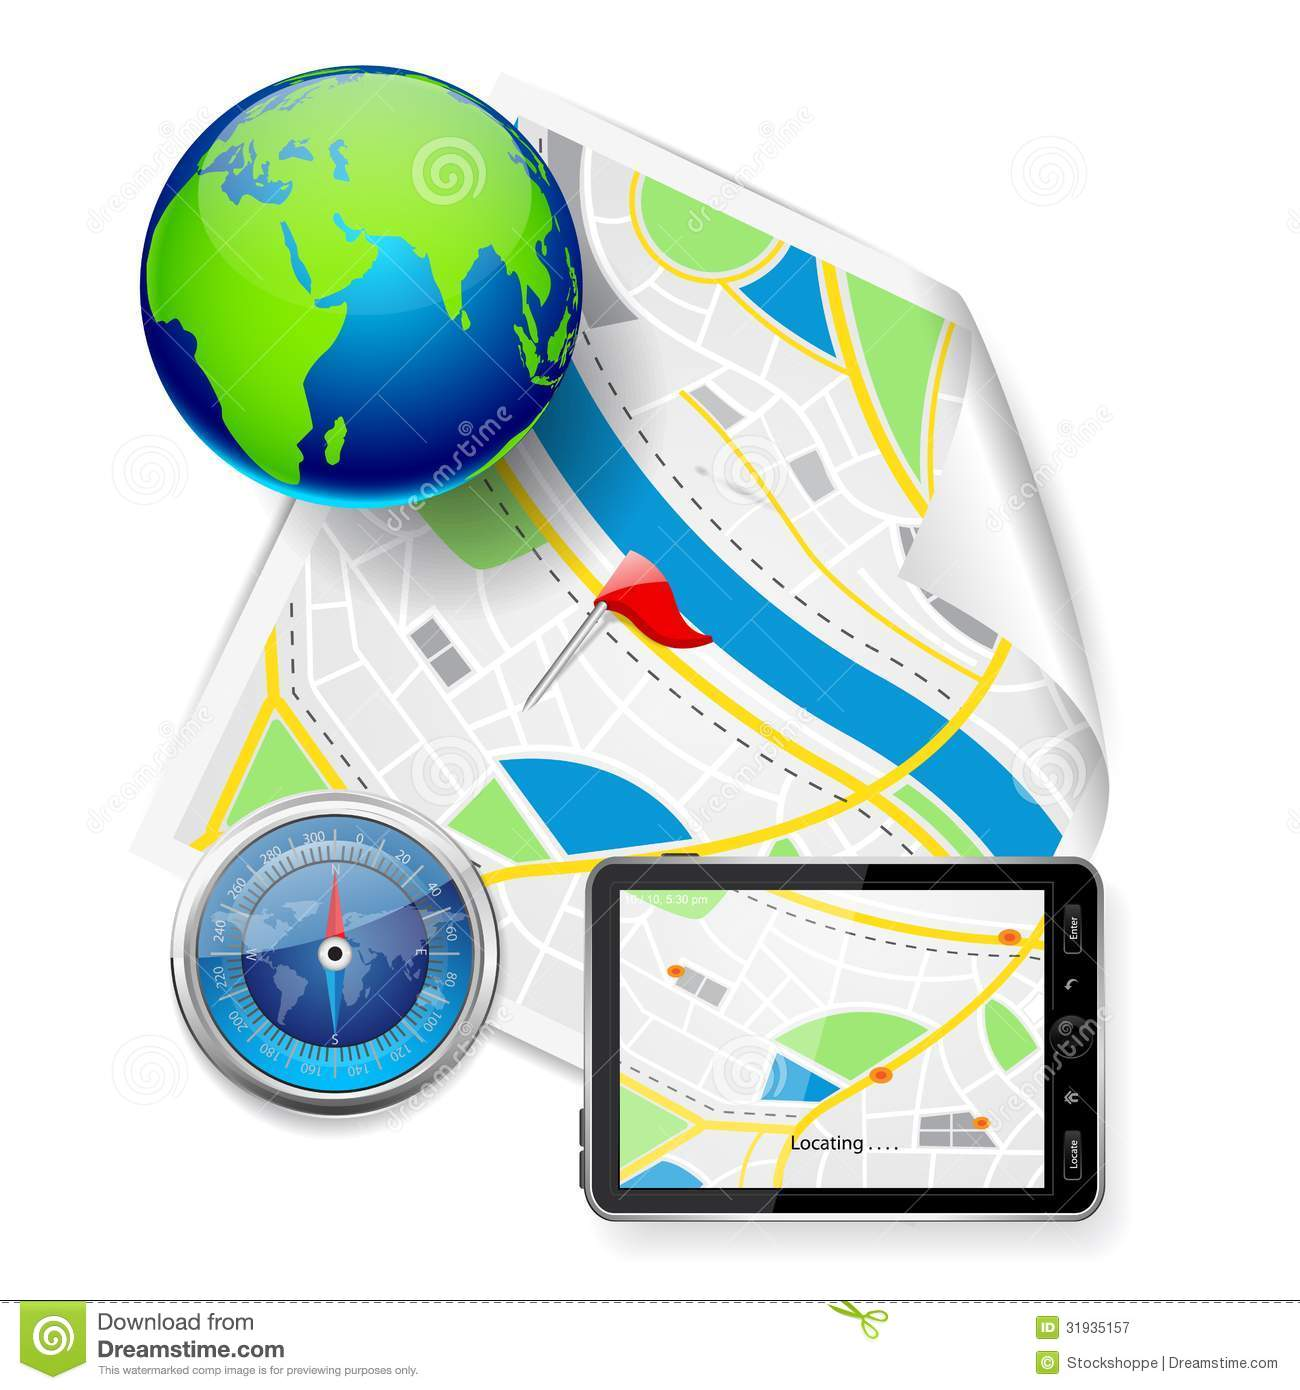 Compass and gps device on road map stock vector image 31935157 compass and gps device on road map gumiabroncs Choice Image